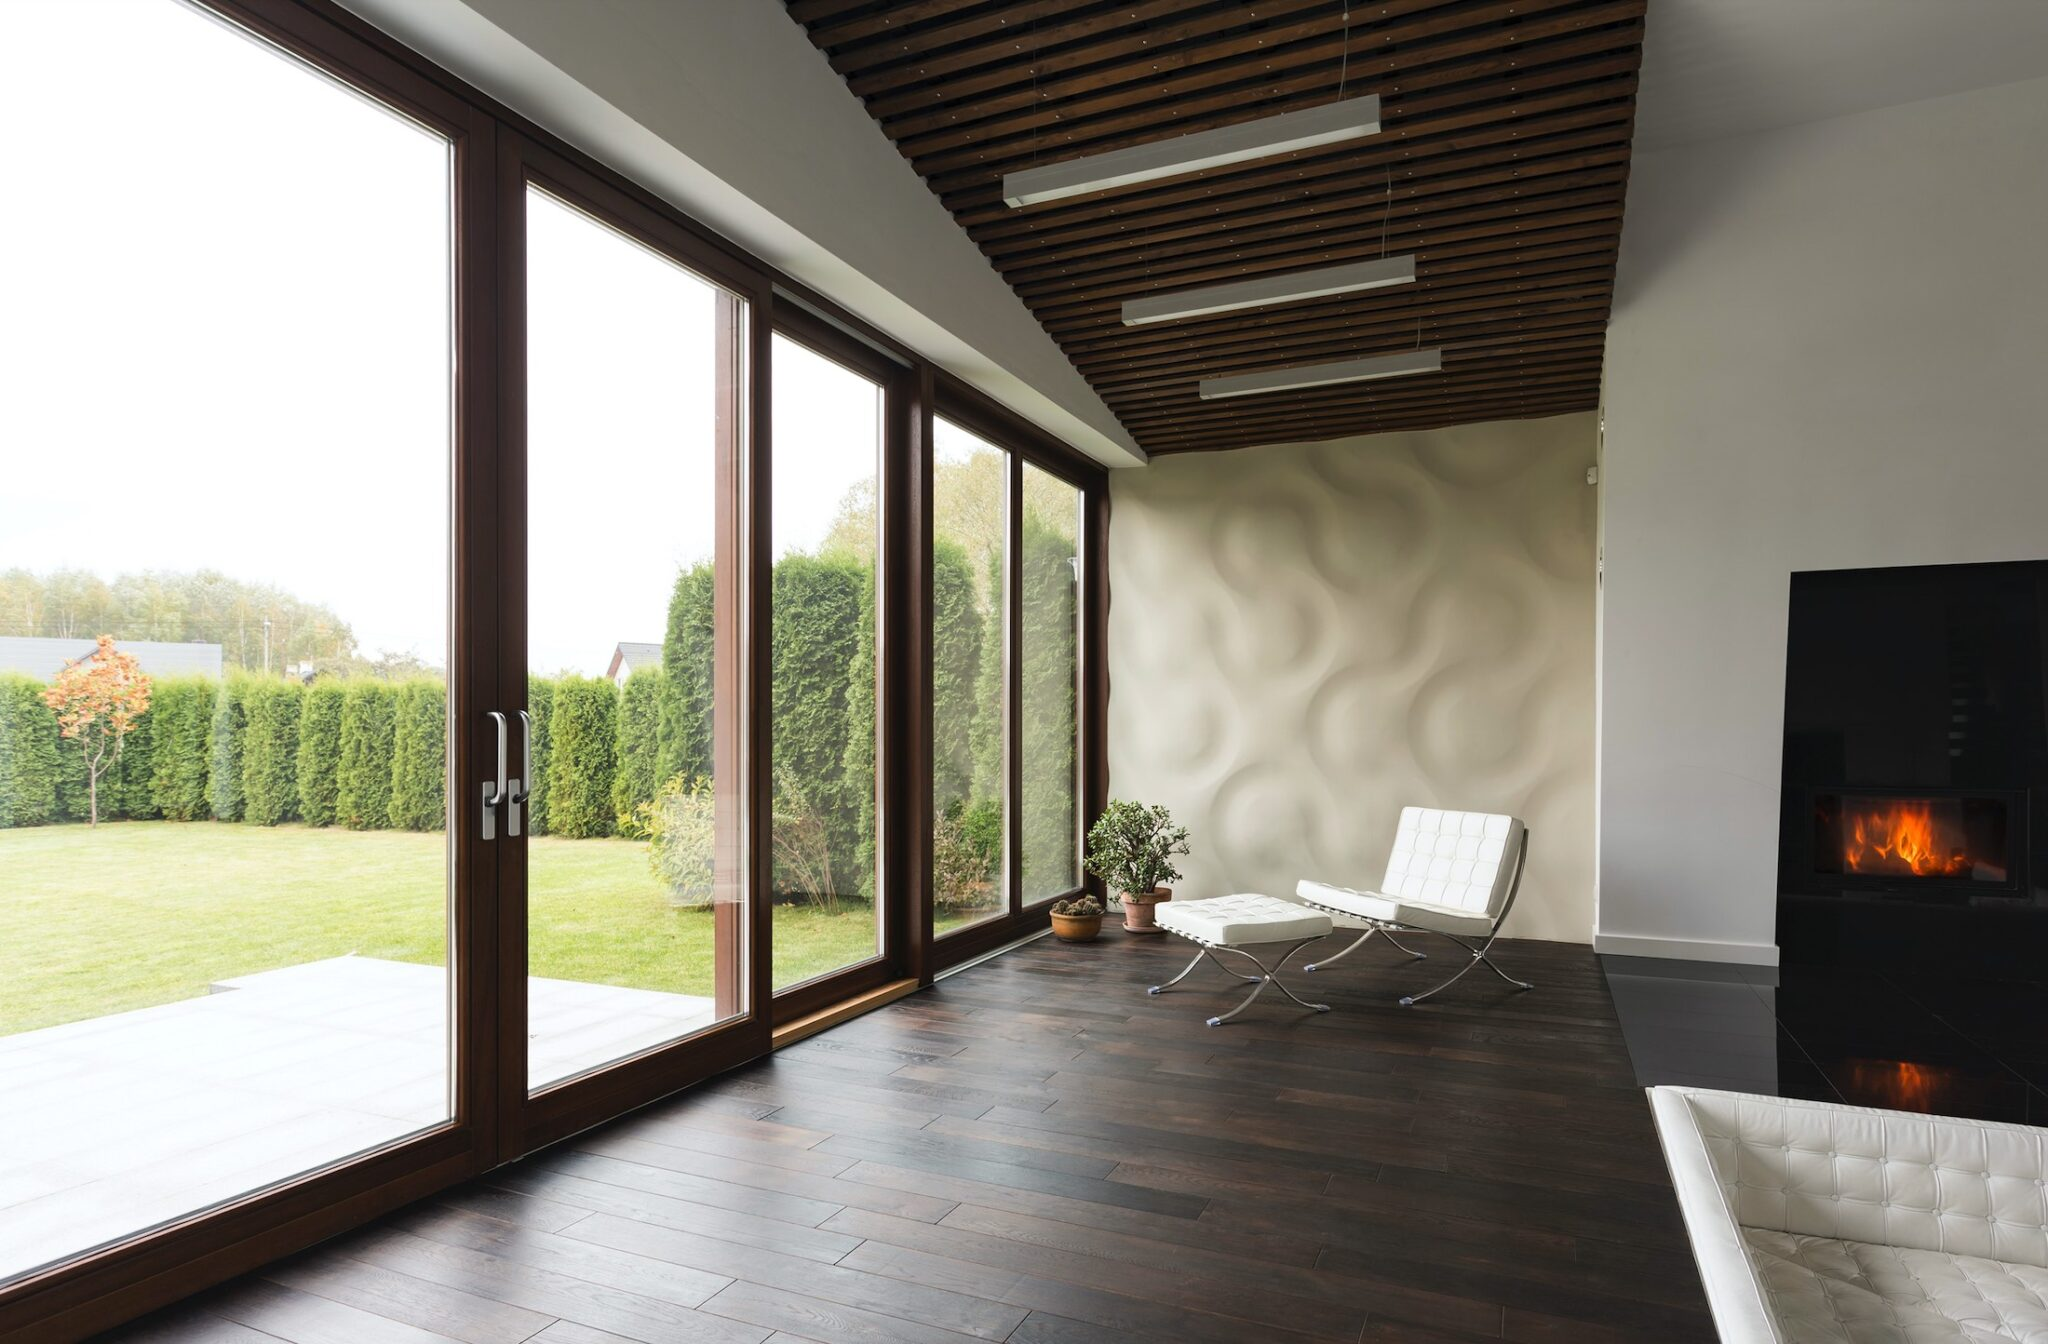 House Window Tint Useful Information And The Pros & Cons of Using It - Home Window Film in Western Michigan